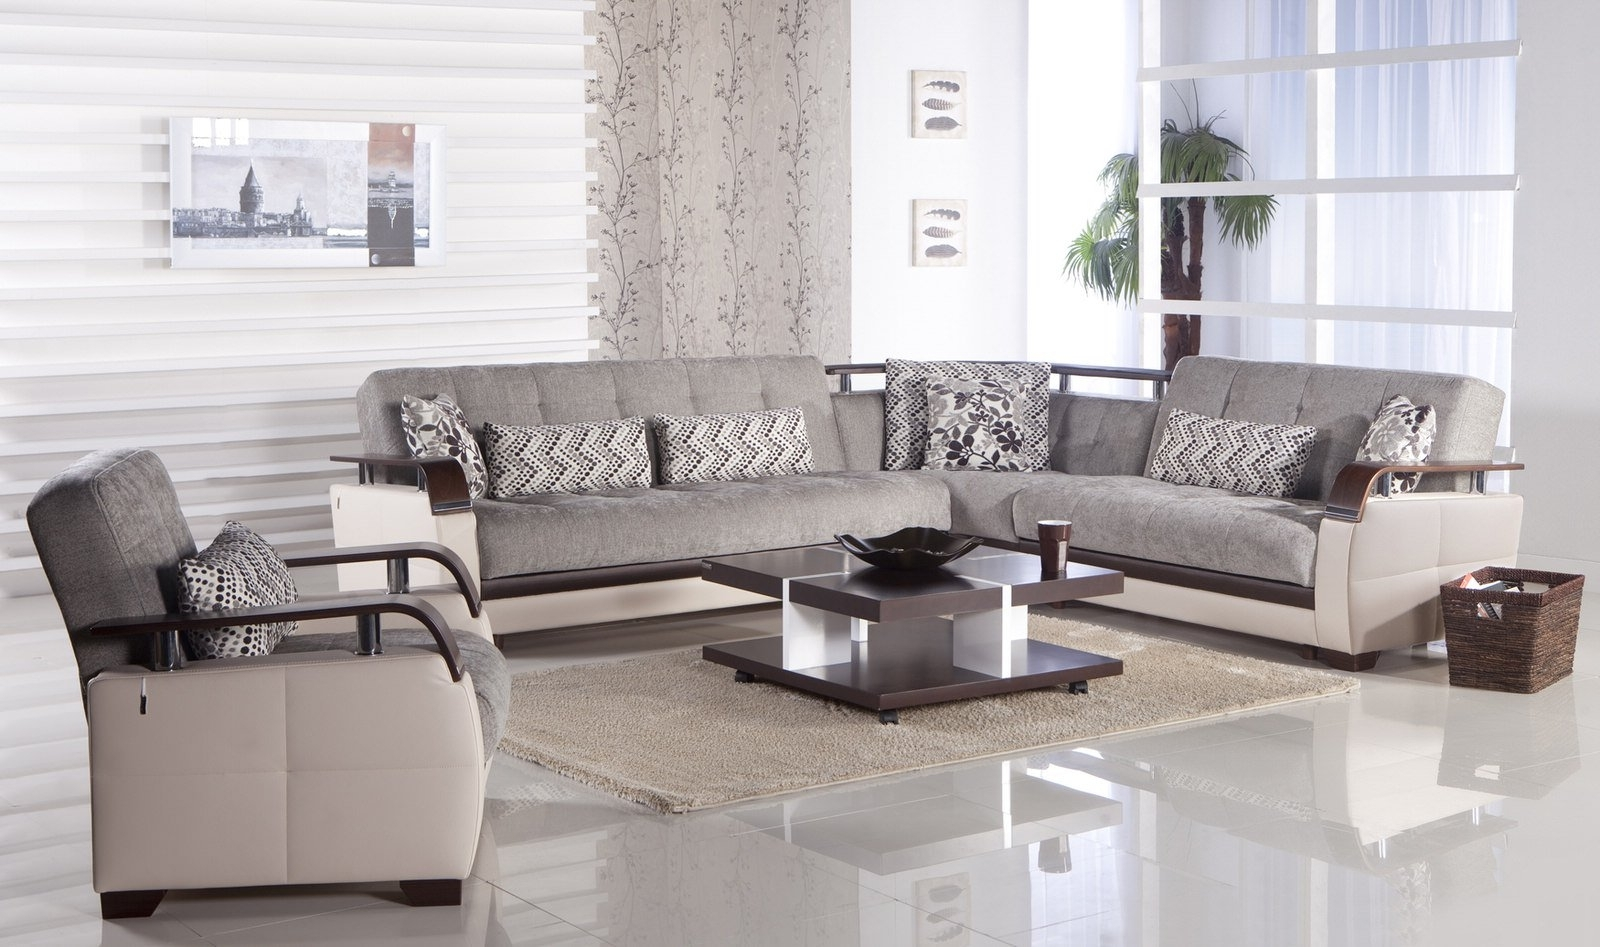 Light Grey Sectional Sofas Pertaining To Well Known Natural Valencia Grey Sectional Sofaistikbal (sunset) (Gallery 8 of 20)